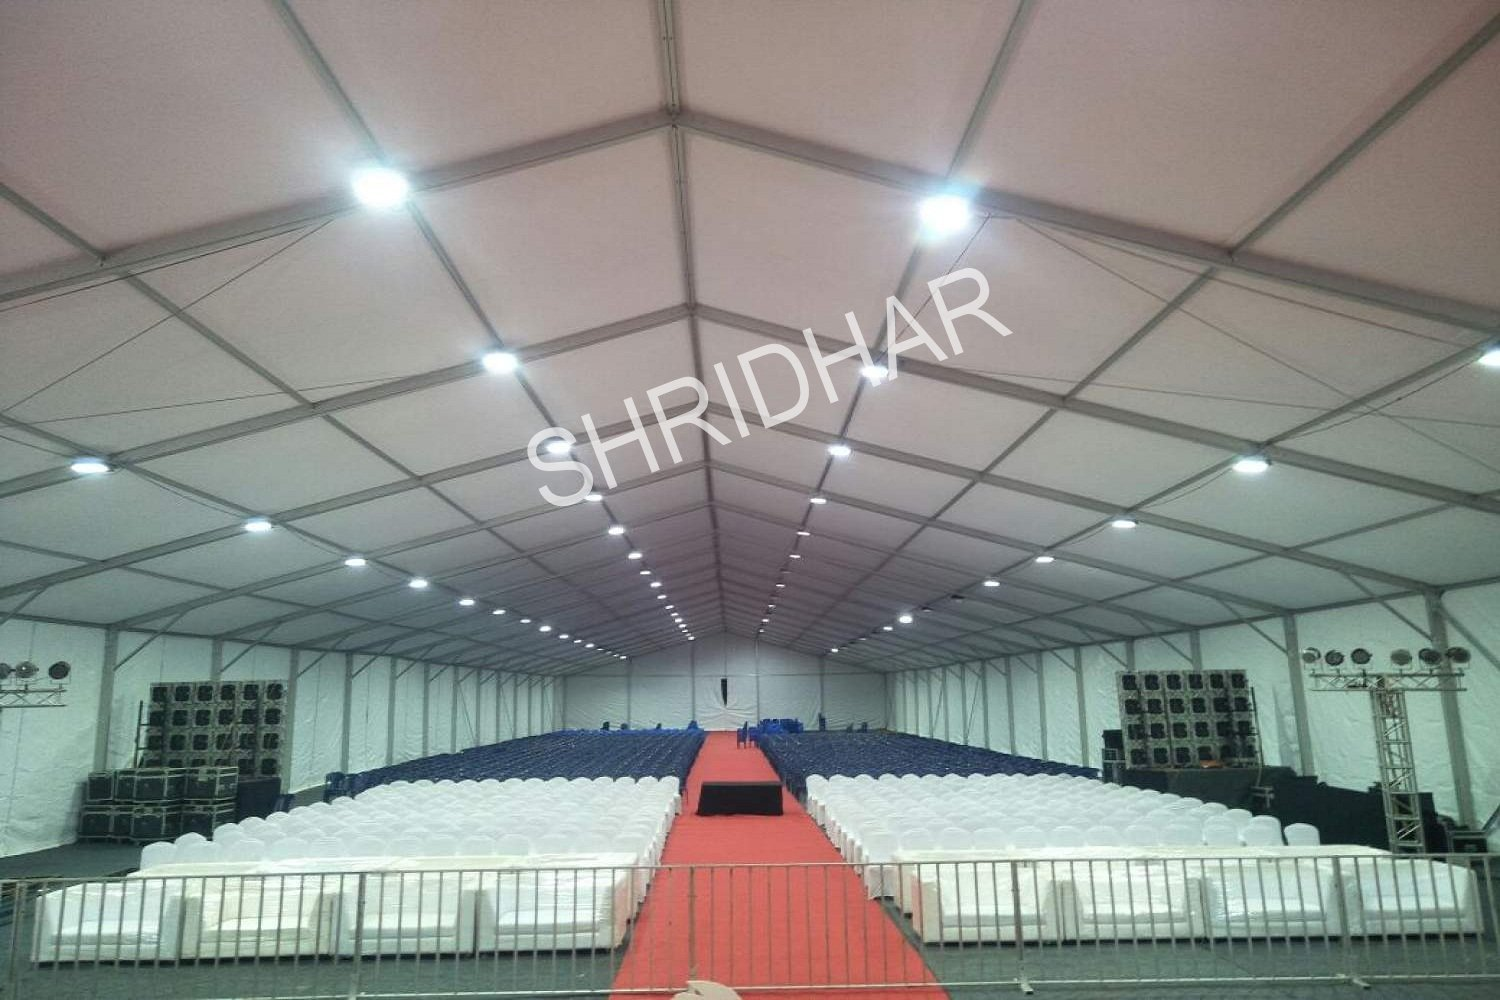 waterproof sheds industrial sheds for rent for hire in bangalore shridhar tent house